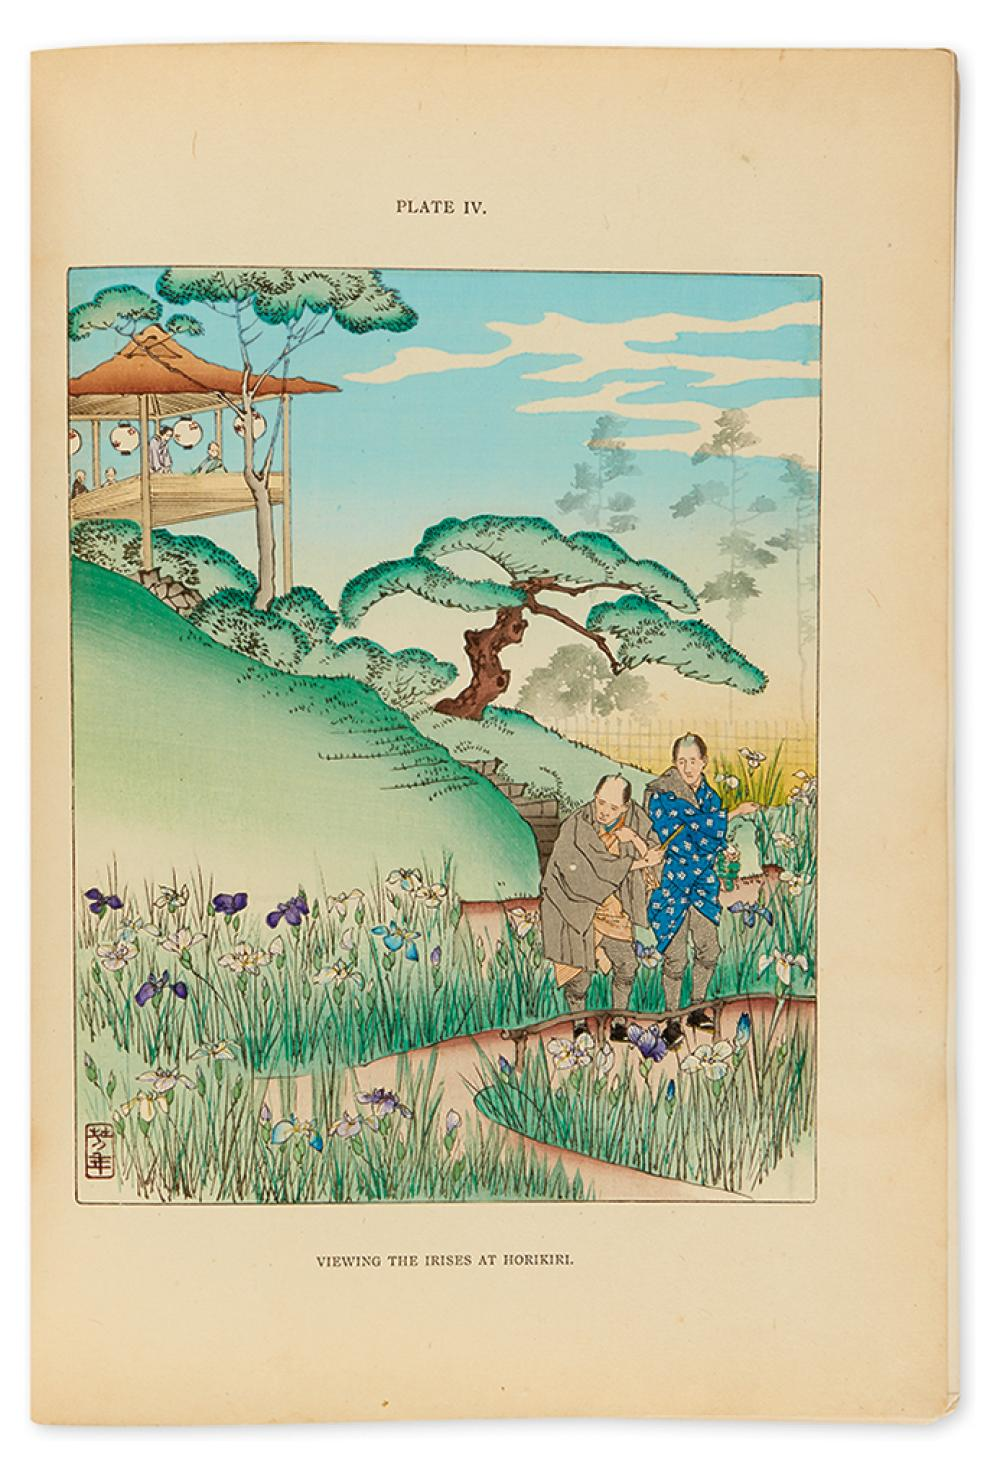 CONDER, JOSIAH. Flowers of Japan and the Art of Floral Arrangement, with Illustrations by Japanese Artists.